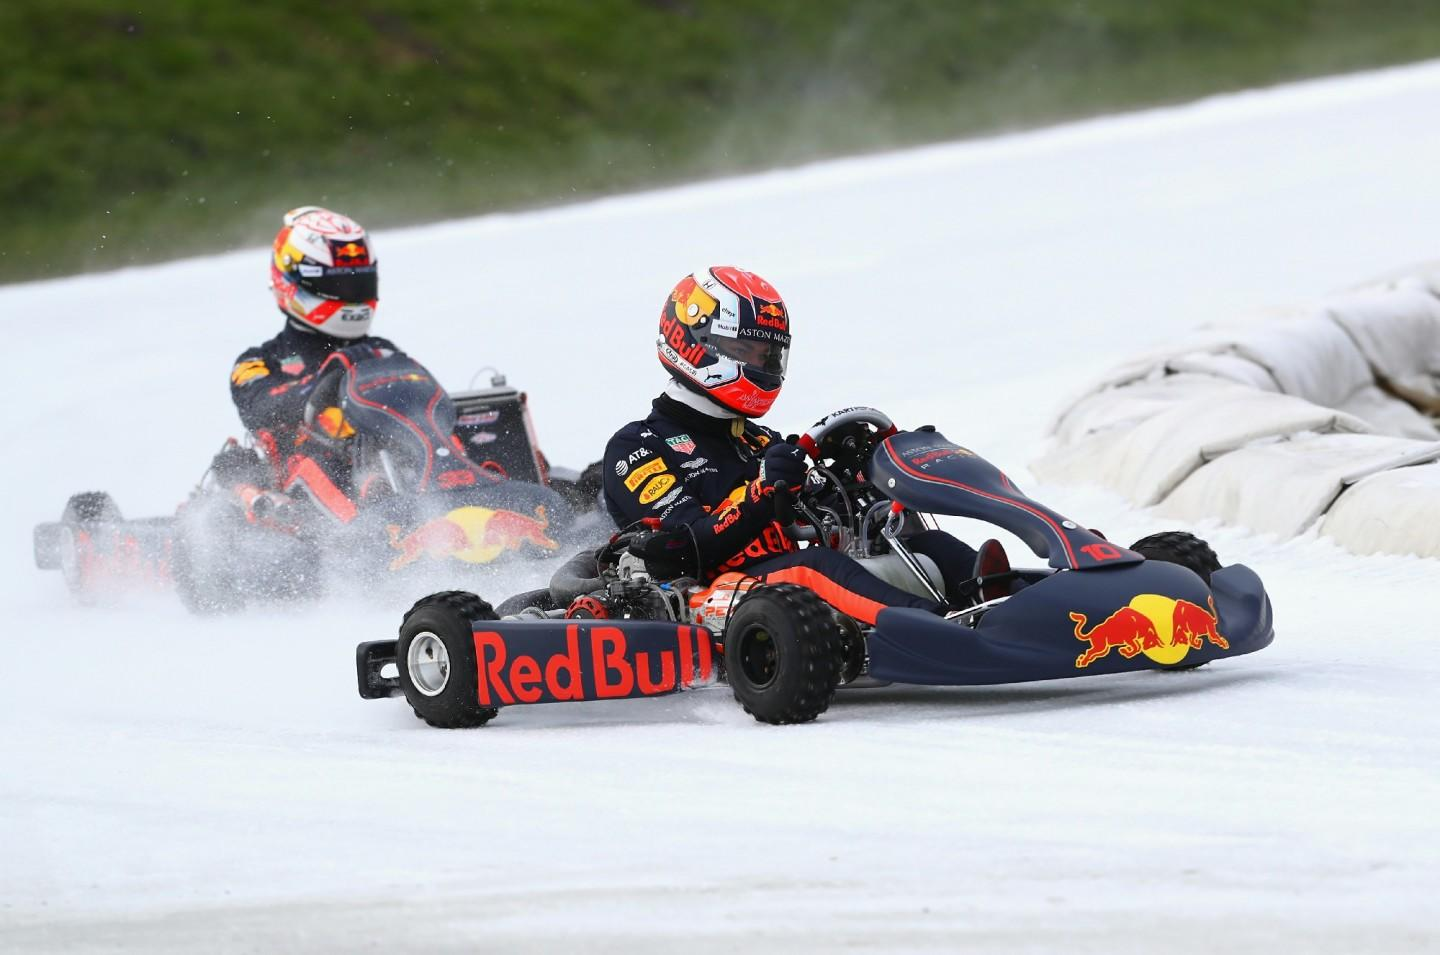 red-bull-racing-f1-ice-karting-gasly-verstappen-11